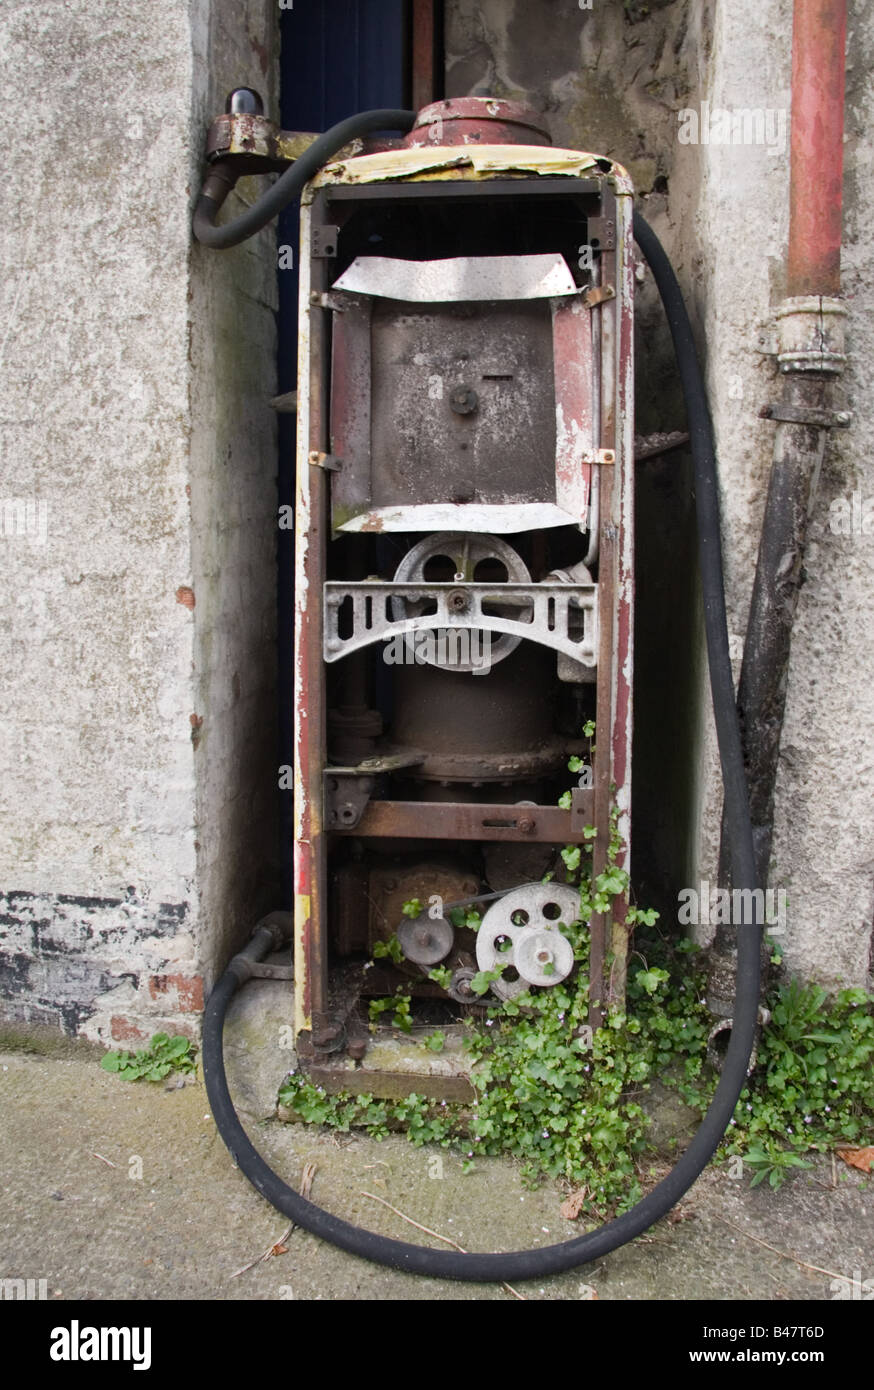 An old petrol pump in advanced state of disintegration, Laugharne, Carmarthen, Wales, UK - Stock Image